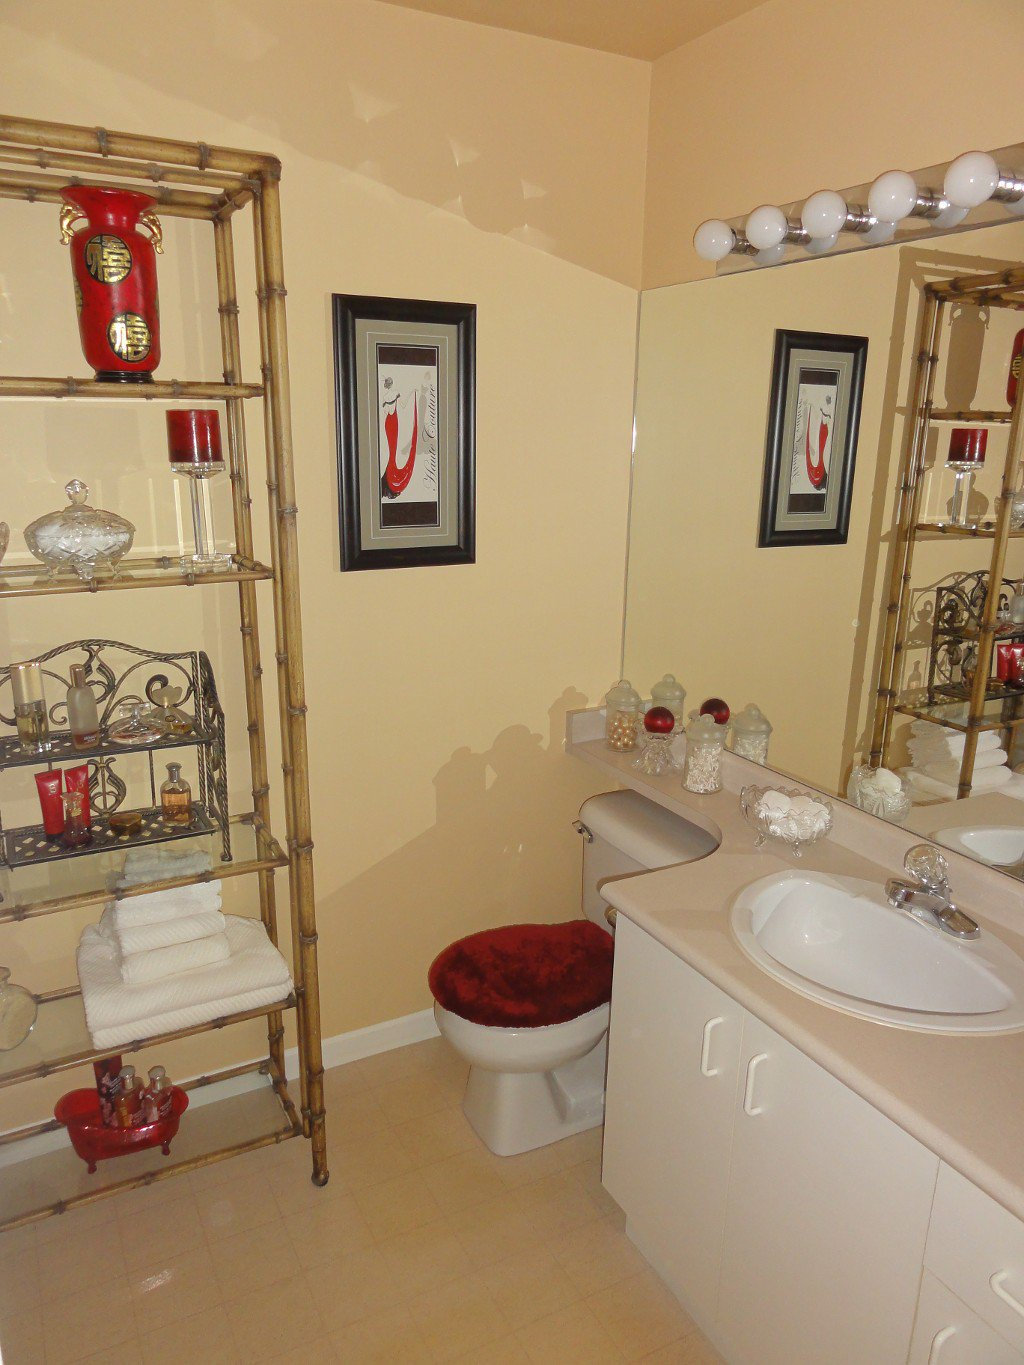 """Photo 11: Photos: 317 20894 57TH Avenue in Langley: Langley City Condo for sale in """"BAYBERRY LANE"""" : MLS®# F1227387"""